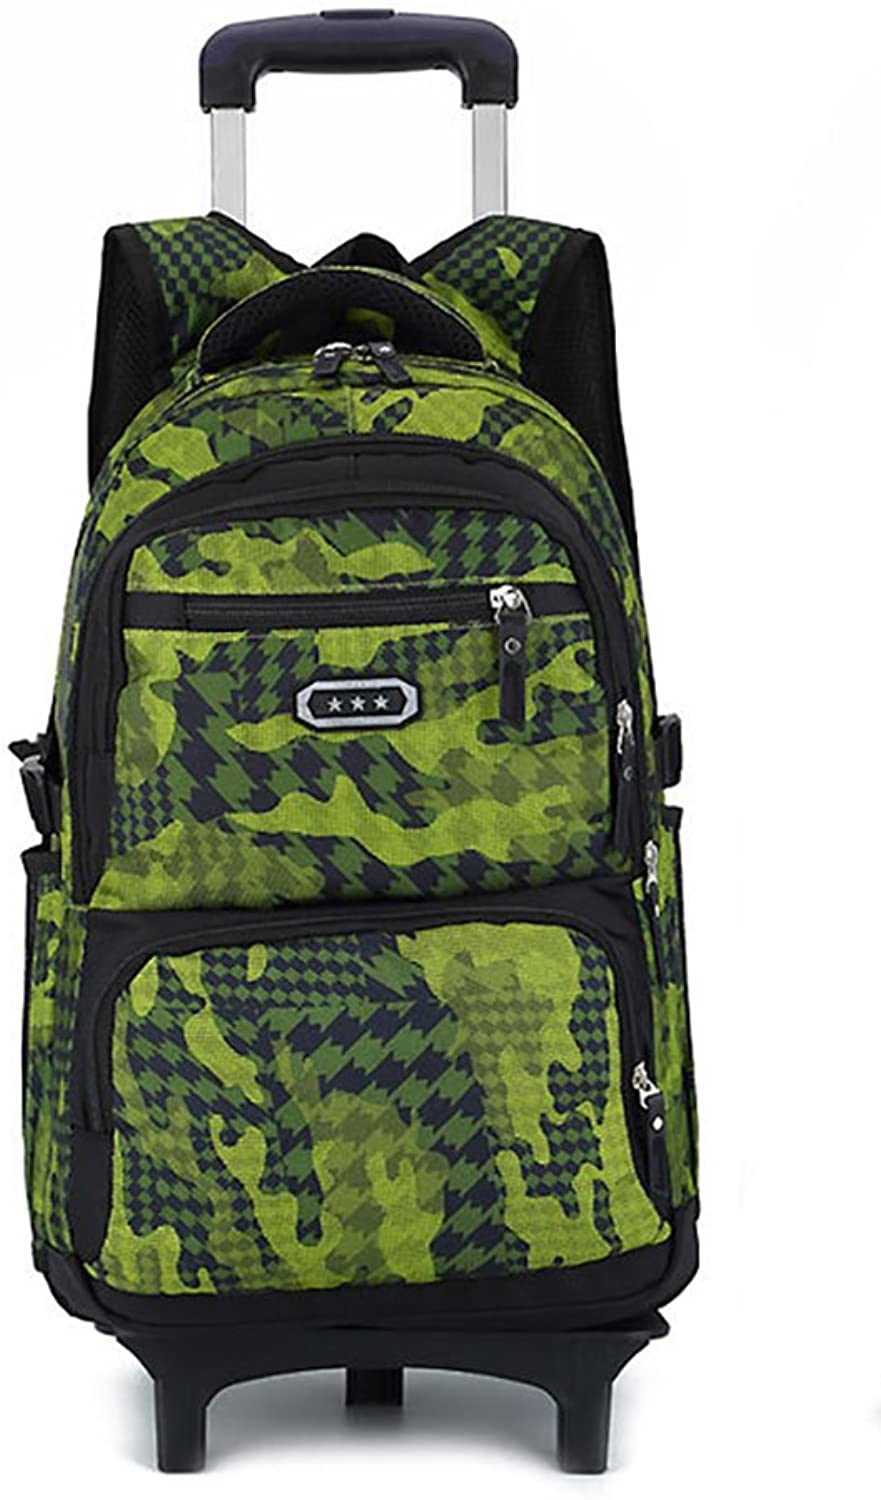 Meetbelify Trolley School Bags Backpack for Boys with Wheels